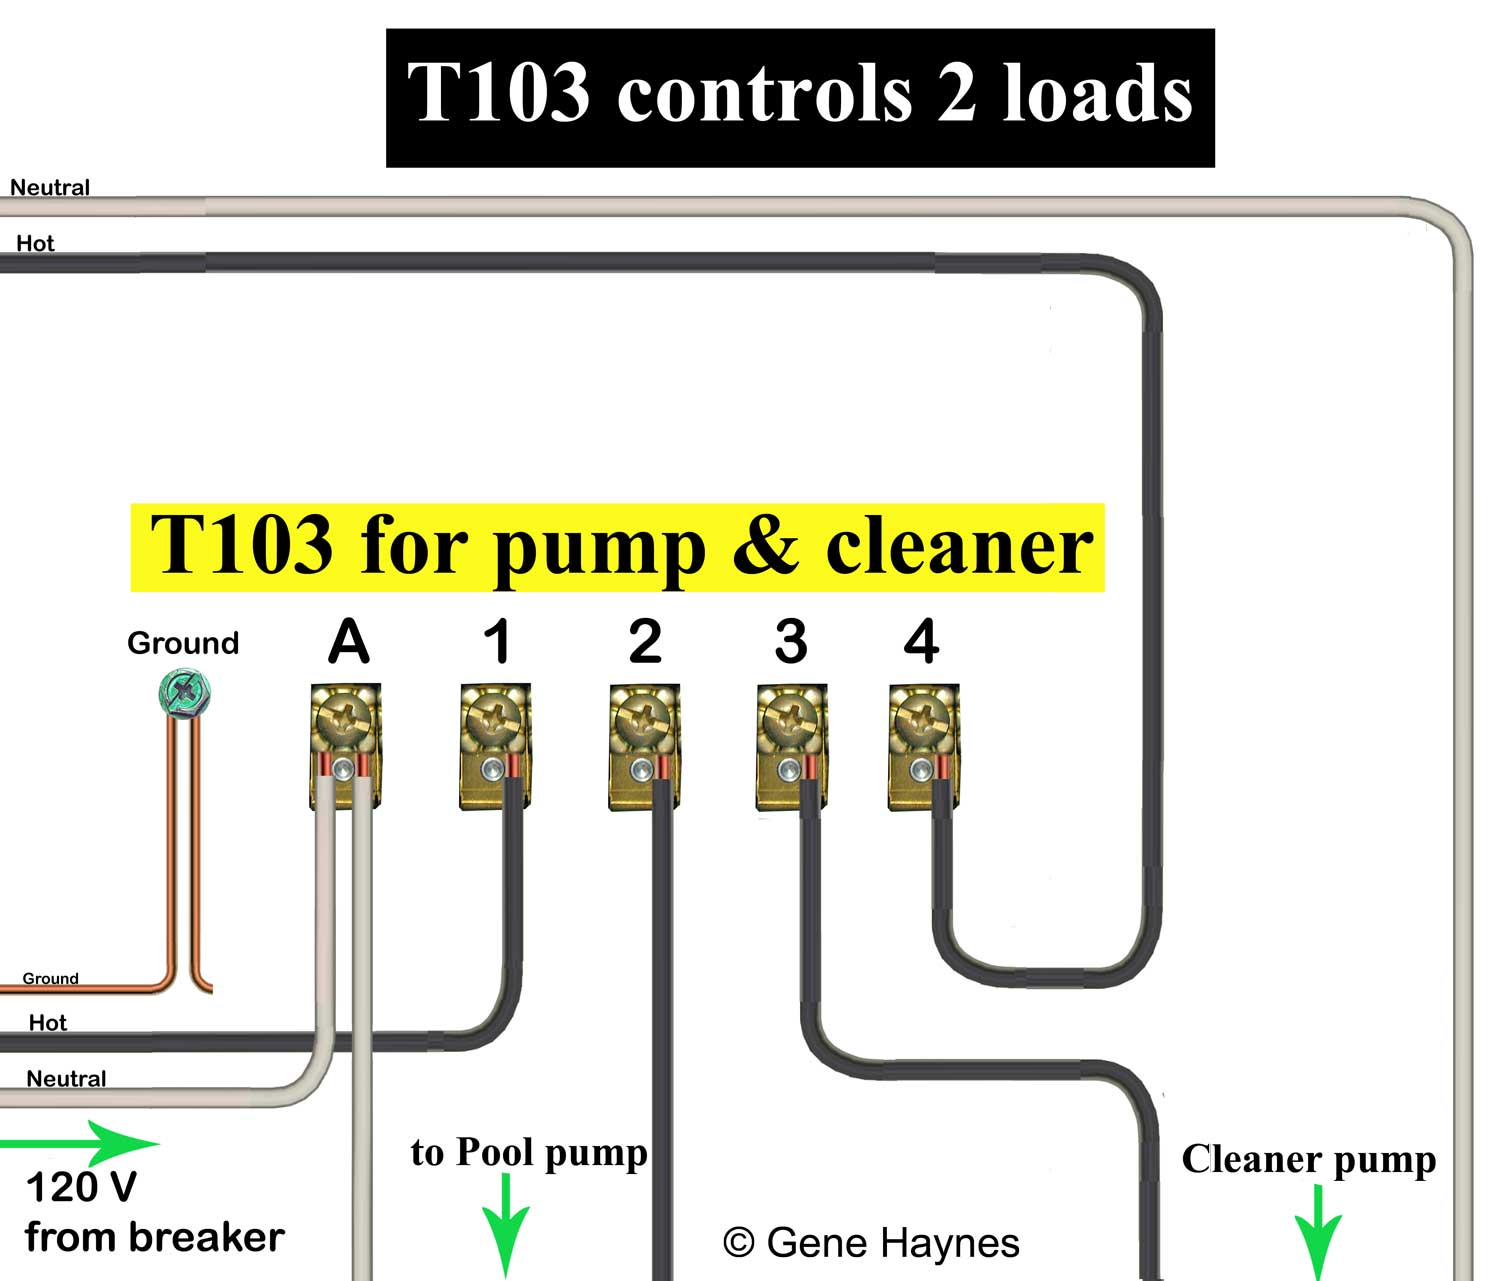 110 volt wiring diagram bazooka bta8100 how to wire t103 timer larger image